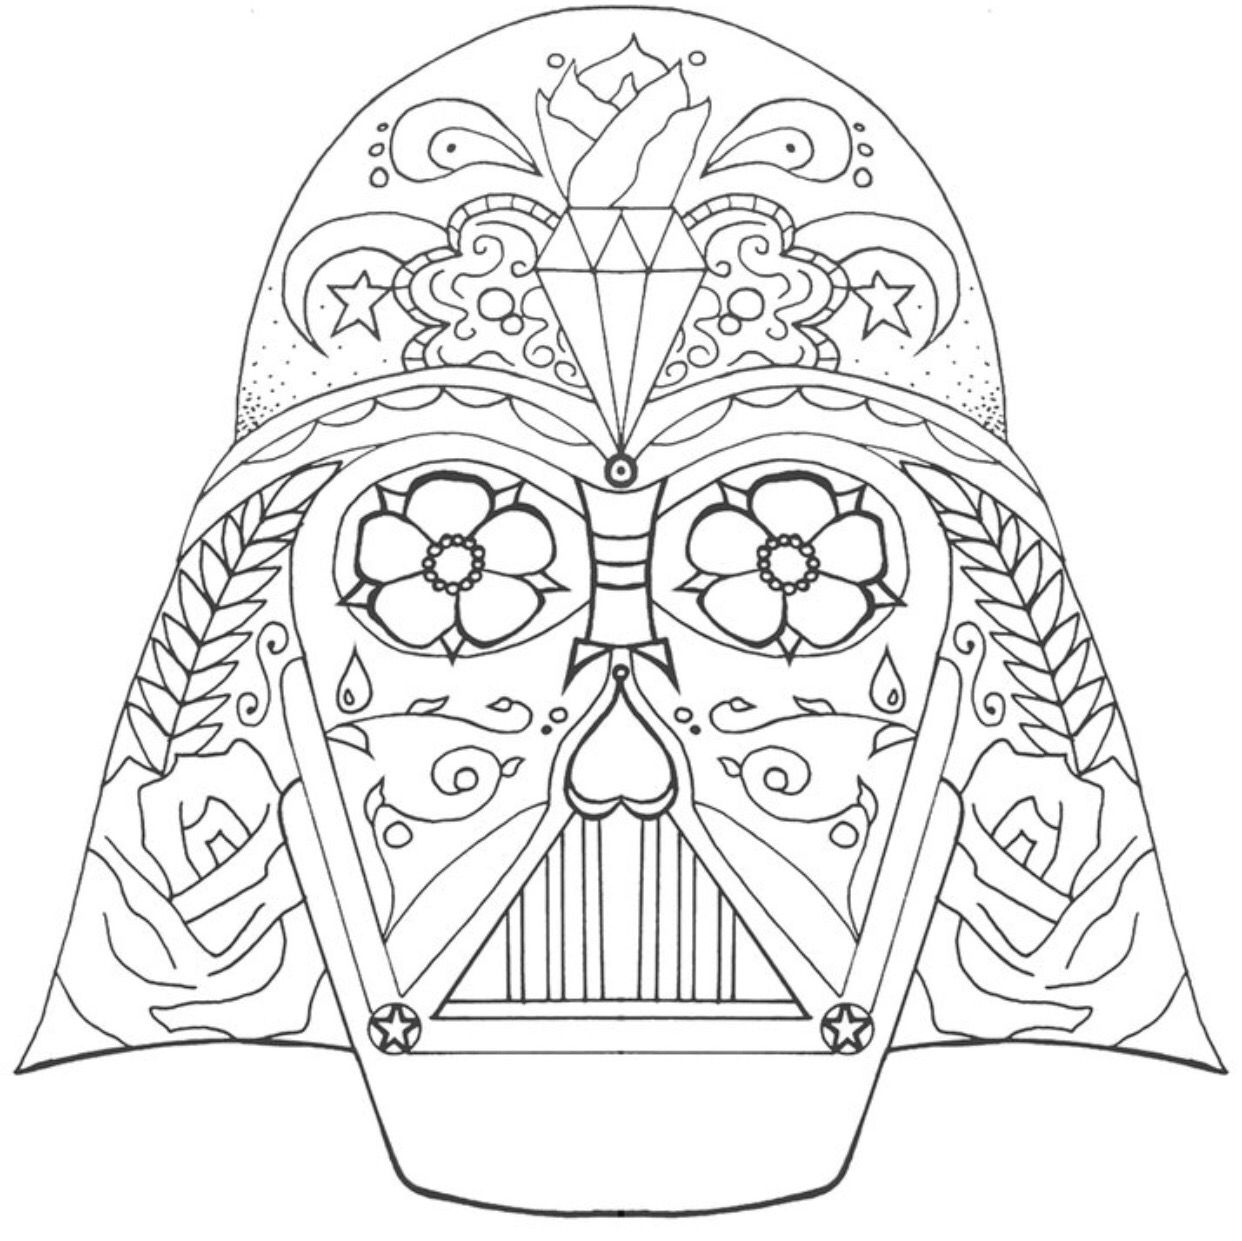 coloring star wars sugar skull star wars stormtrooper sugar skull coloring page skull coloring star wars sugar skull